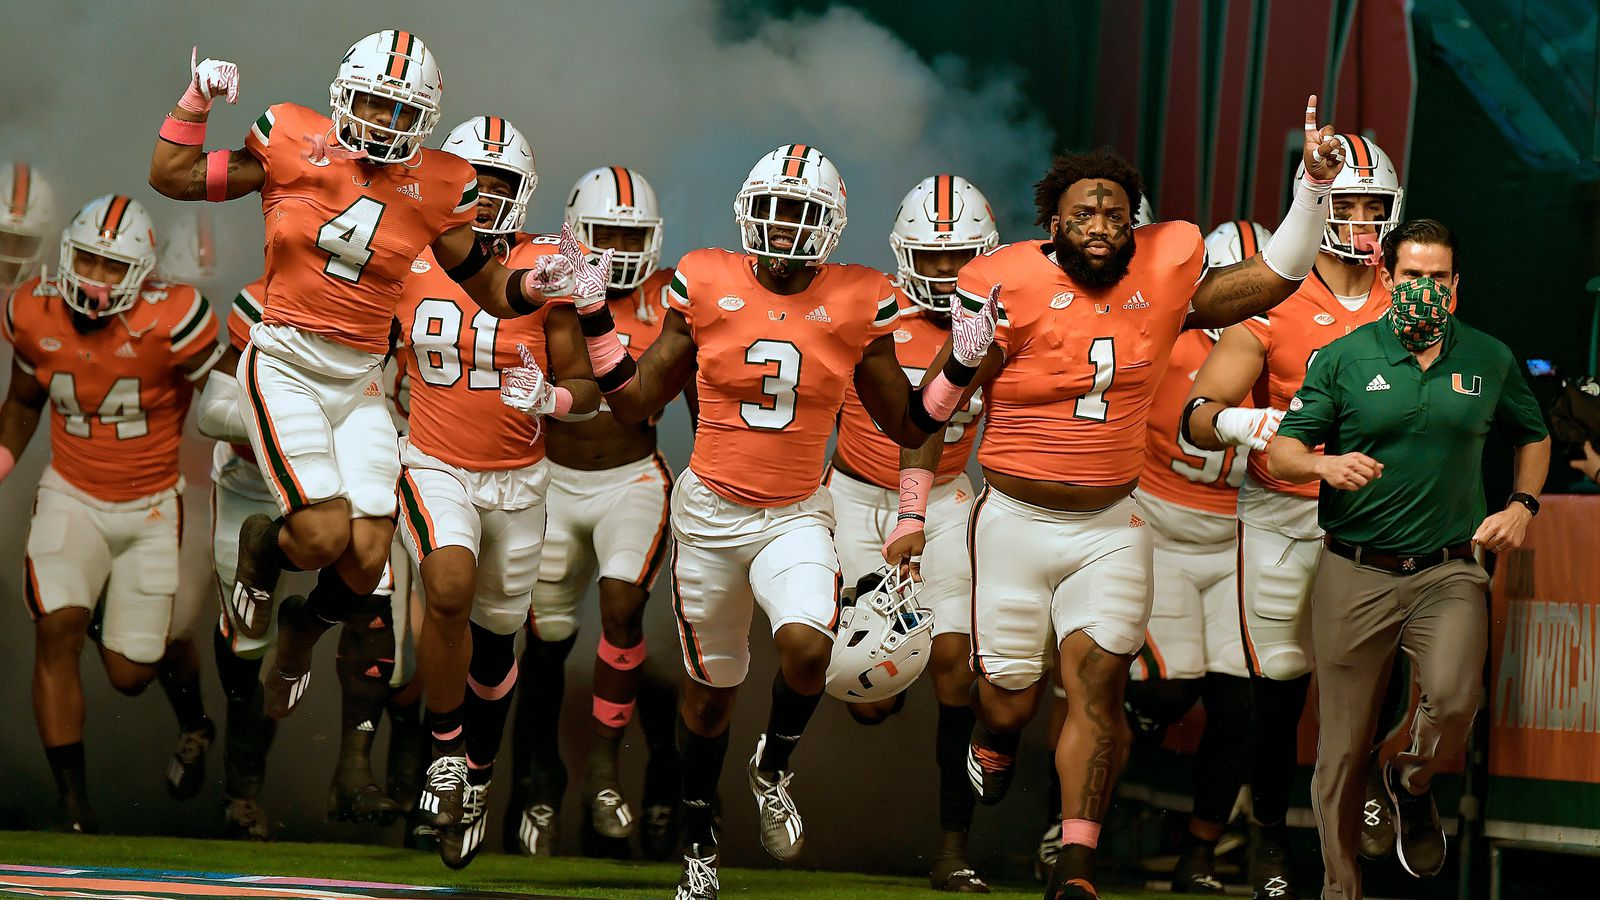 Miami Hurricanes Schedule Issues Show How College Football S Coronavirus Issues Are Mounting